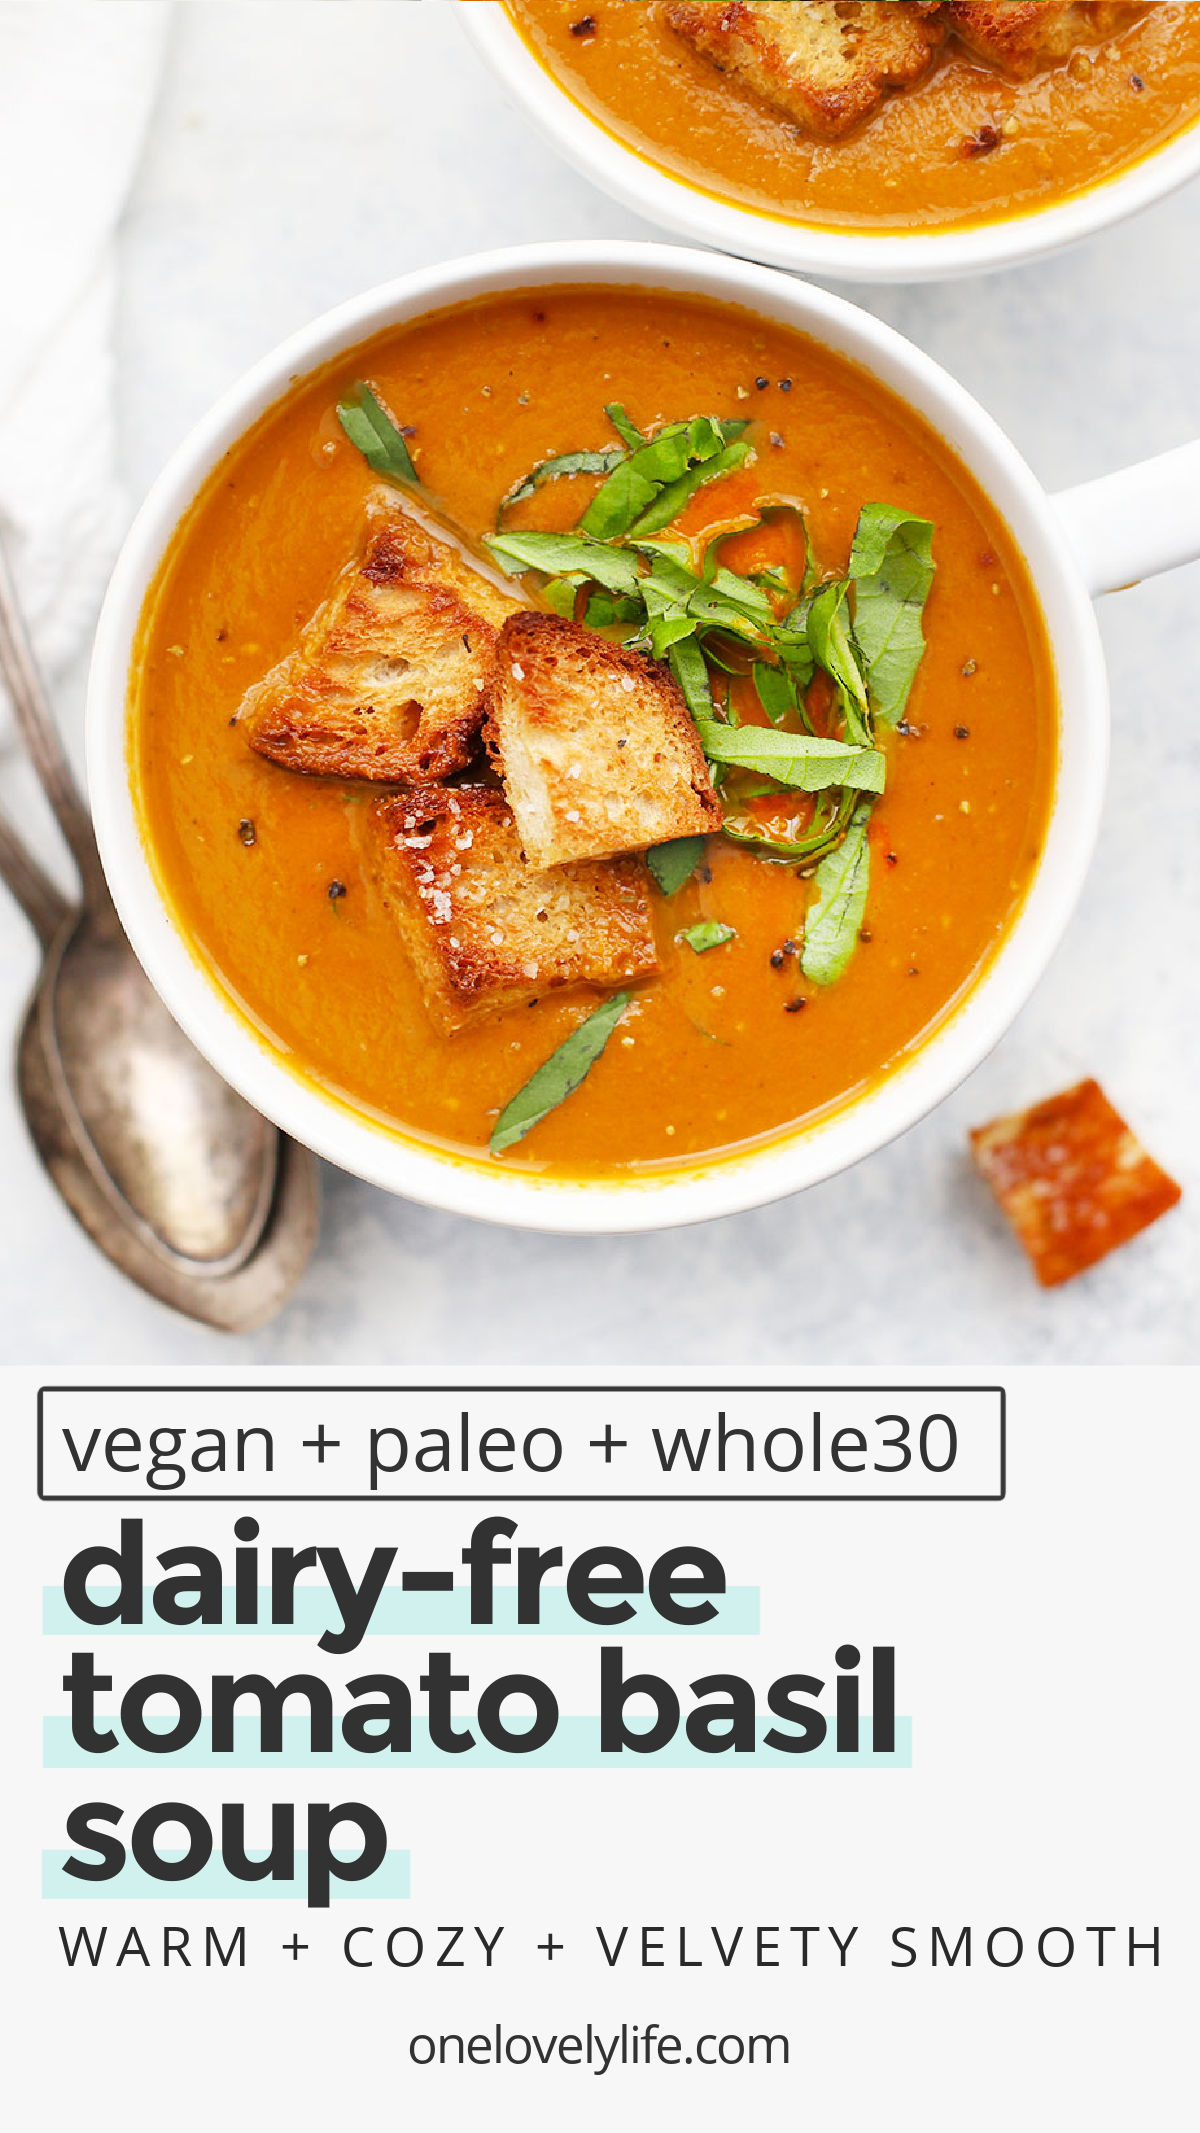 Creamy Tomato Basil Soup - You'd never guess that this creamy tomato soup is 100% vegan. It's full of deep, rich tomato basil flavor and a gorgeous velvety texture you'll fall for over and over again. (Vegan & Paleo) // Roasted Tomato Basil Soup Recipe // Paleo Tomato Basil Soup // Vegan Tomato Basil Soup #tomatosoup #vegan #paleo #dairyfree